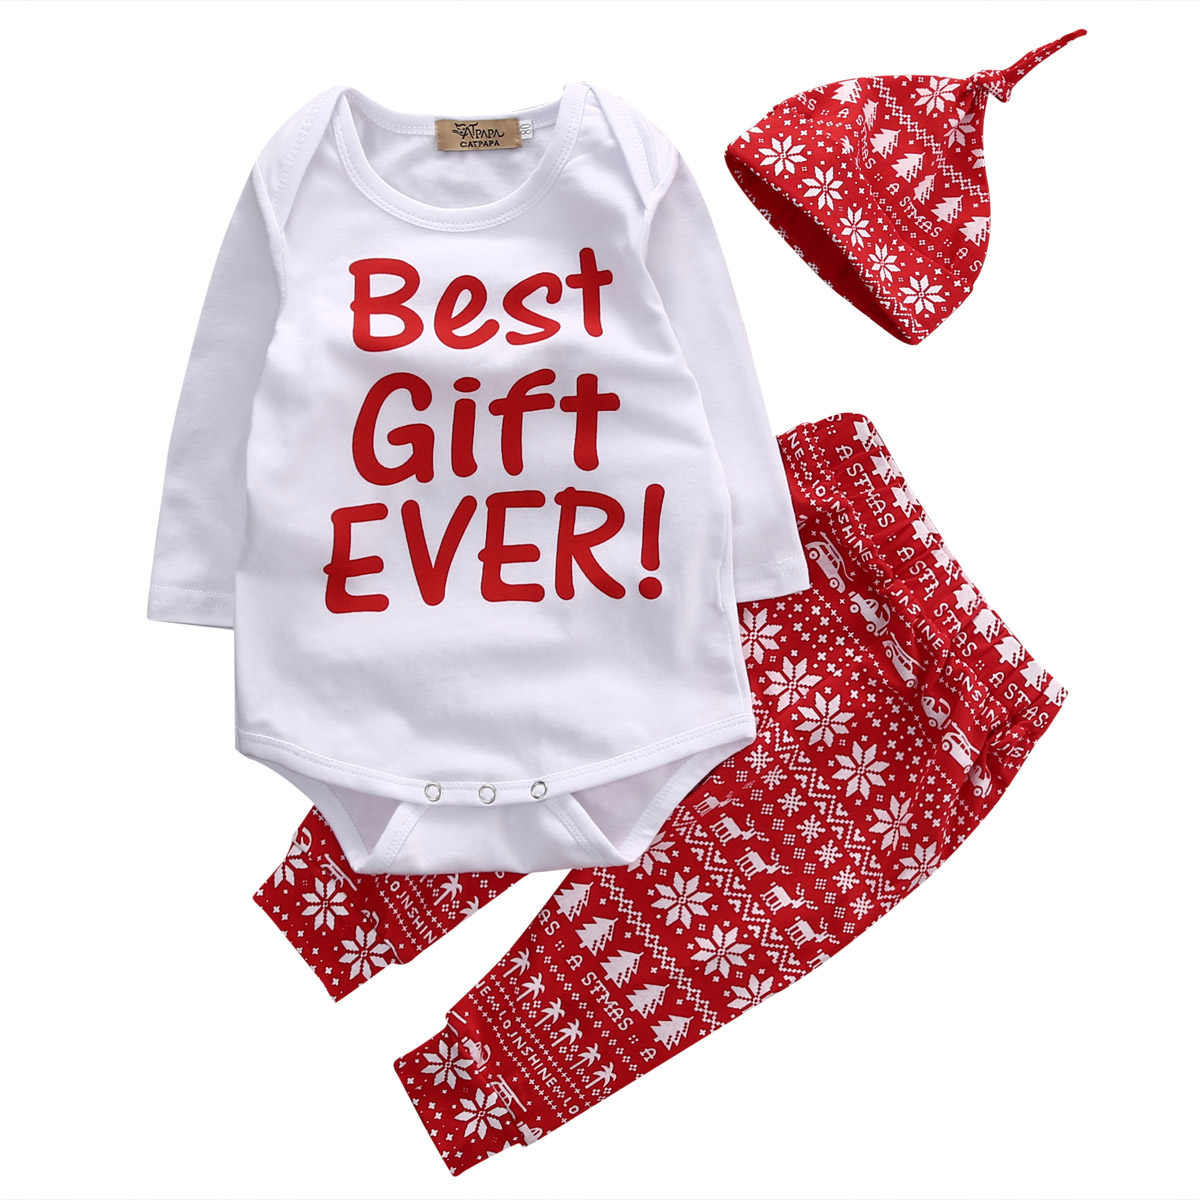 b2af42f17 Christmas Newborn Baby Girl Boy Long Sleeve Clothes Romper + Pants + Hat  3pcs Baby Outfit Xmas Clothing-in Clothing Sets from Mother & Kids on ...